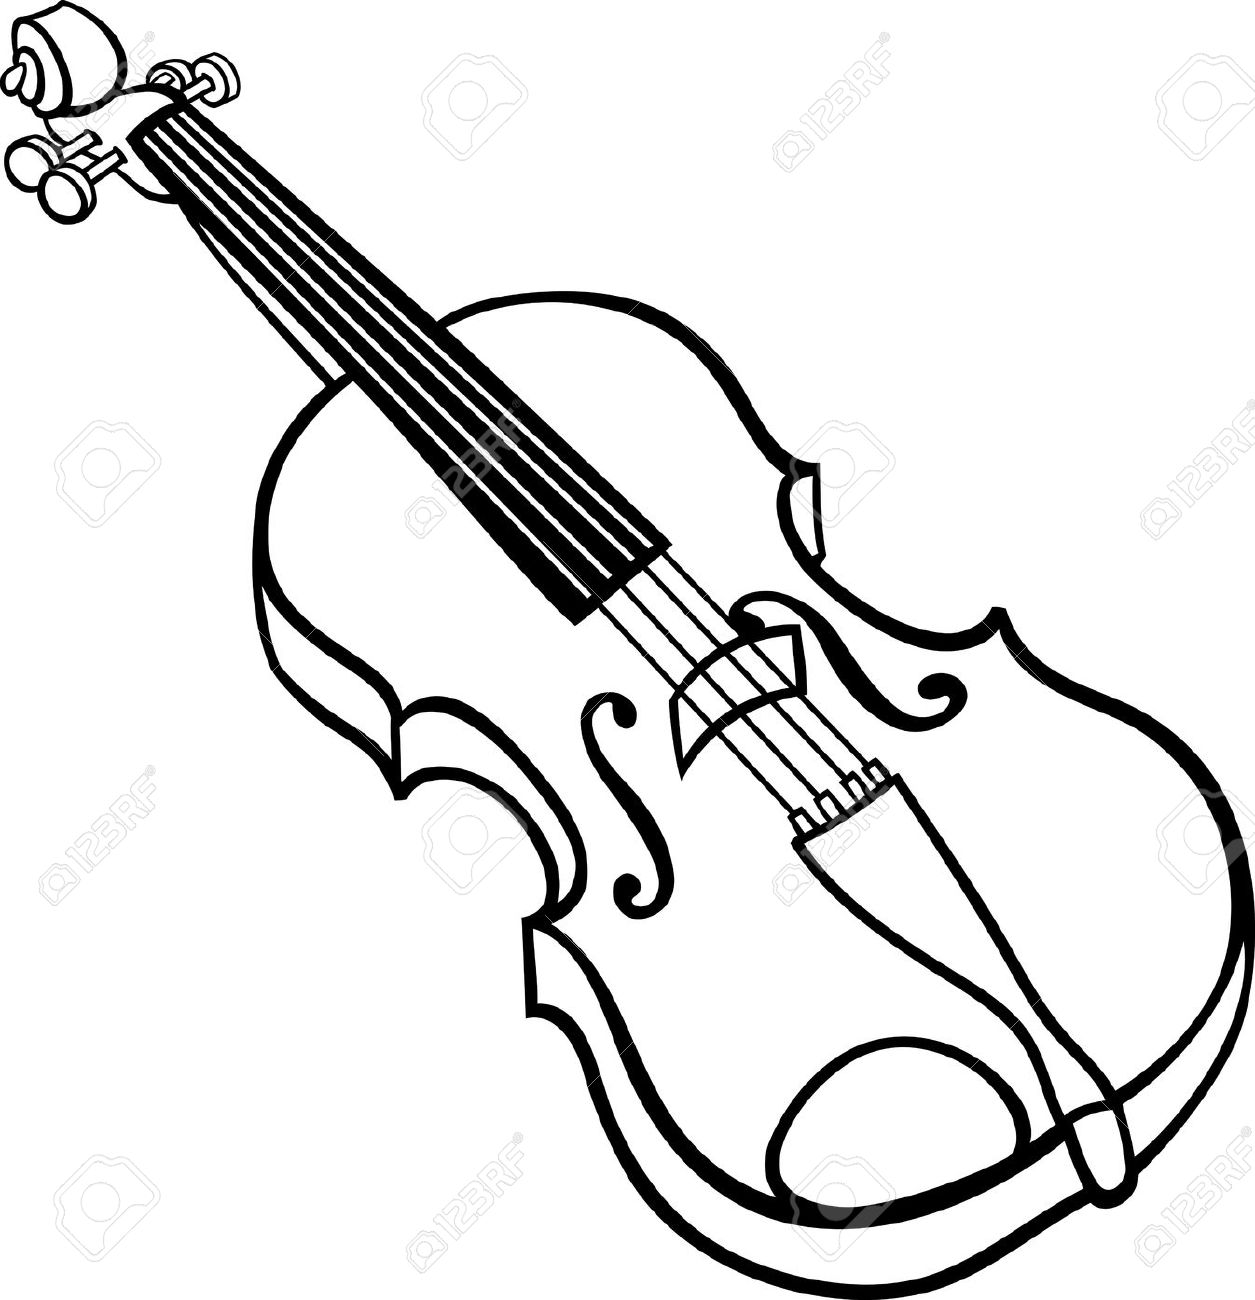 3,490 Stringed Instrument Stock Illustrations, Cliparts And.